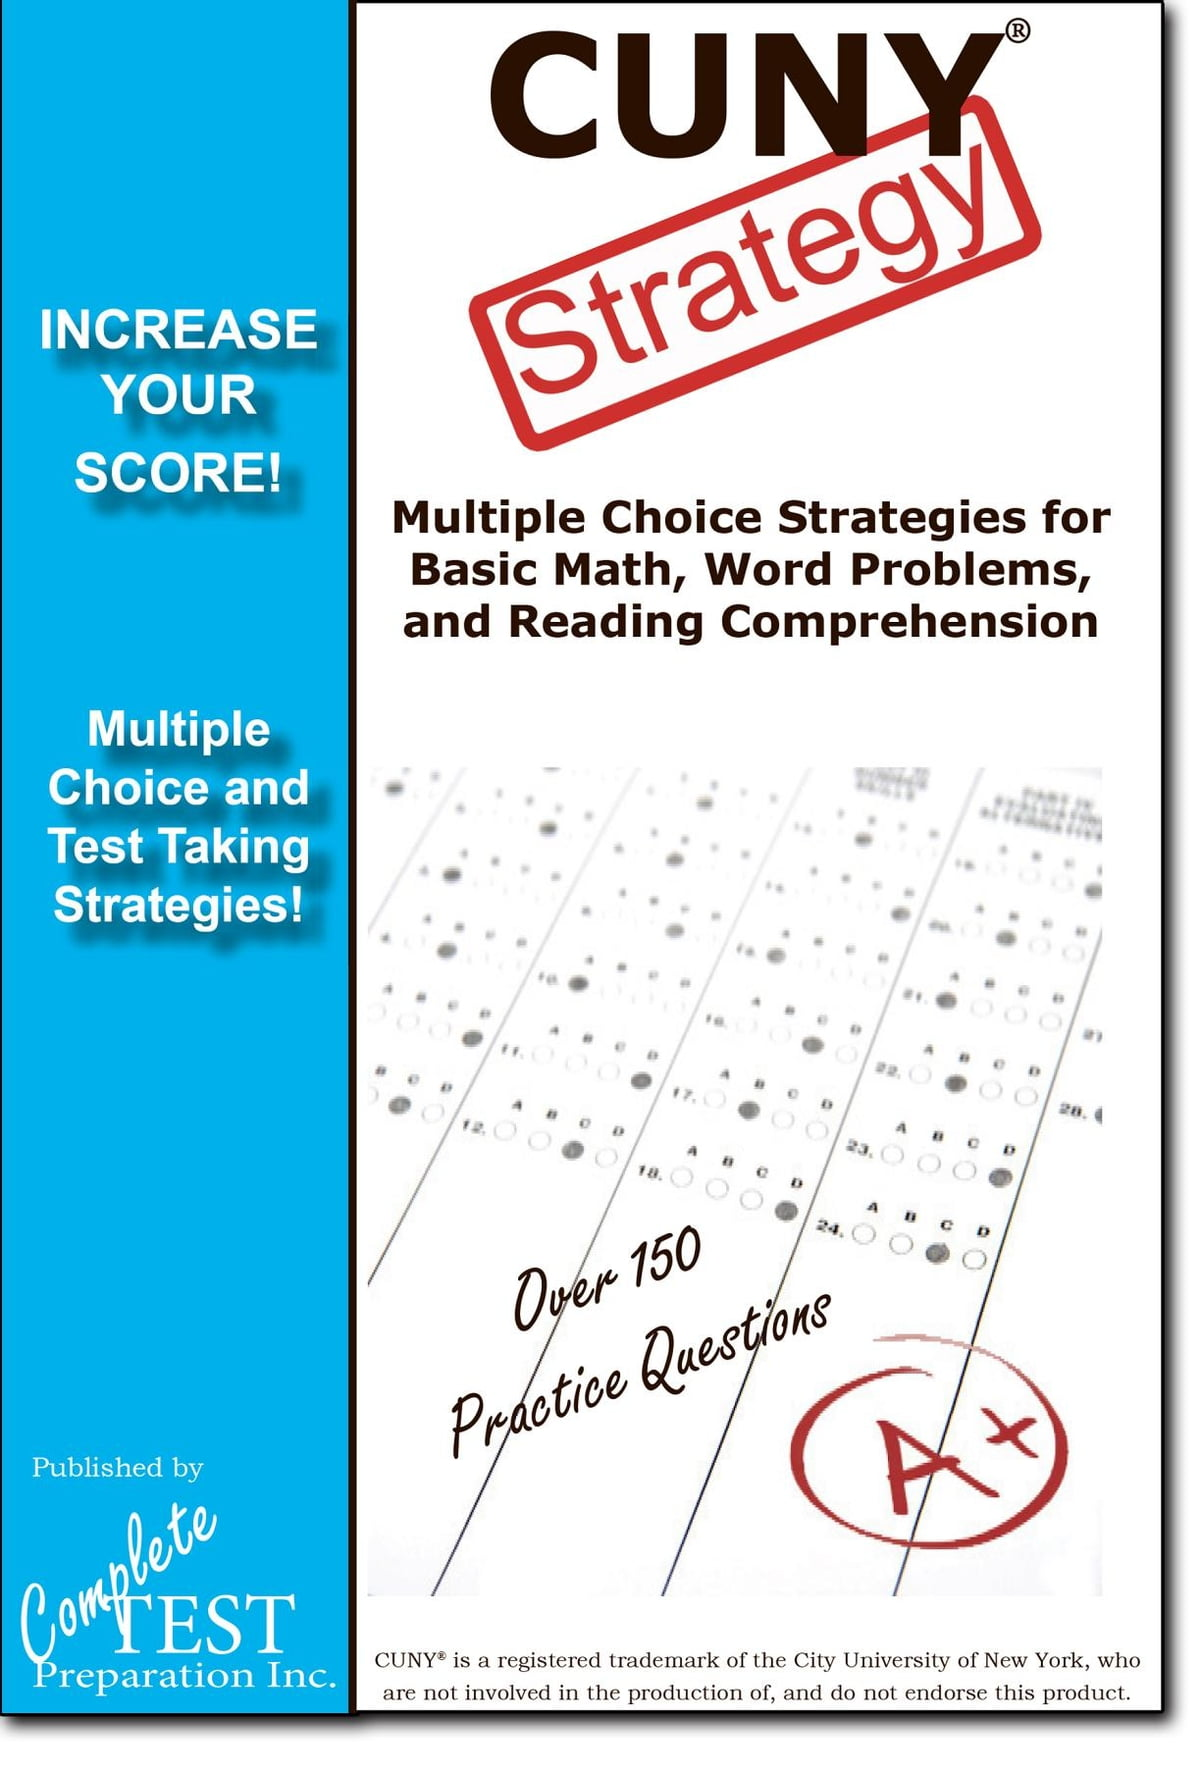 Cuny test strategy ebook by complete test preparation inc cuny test strategy ebook by complete test preparation inc 9781928077152 rakuten kobo baditri Images